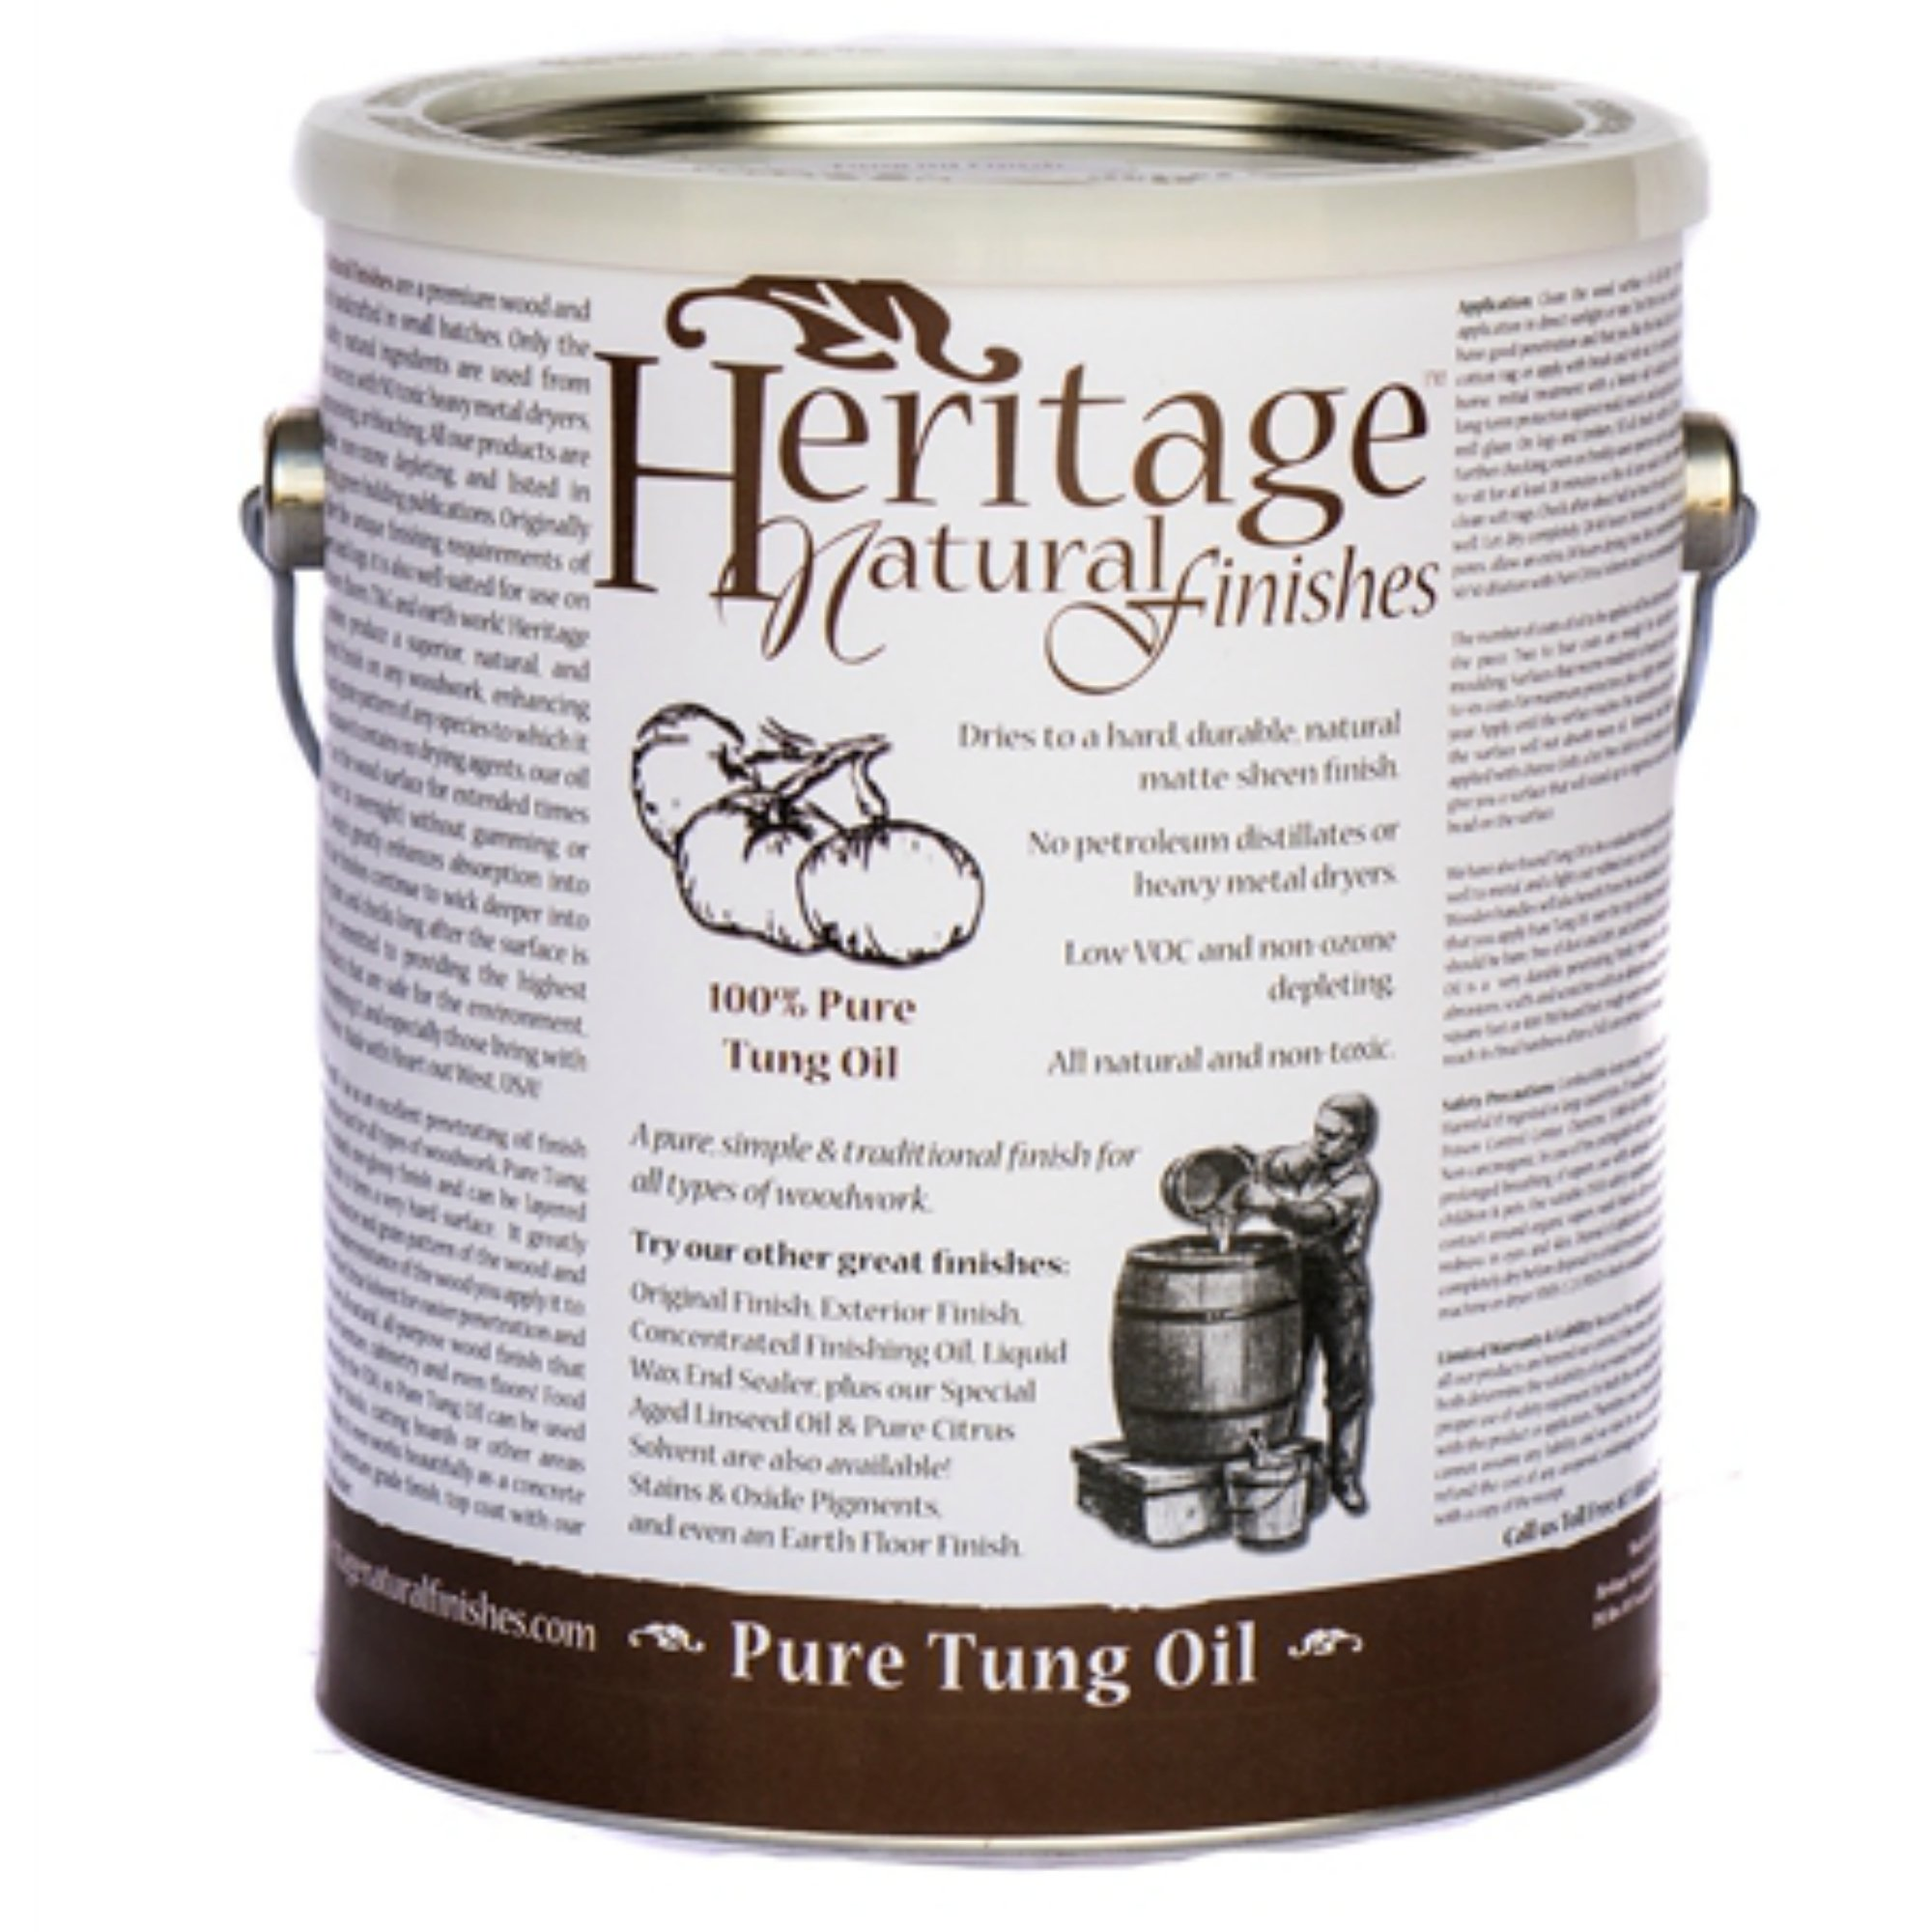 Heritage Natural Finishes – 100% Pure Tung Oil – Natural Oil Finish For All  Types of Woodwork – Approved Food Safe By The FDA (1 Quart)